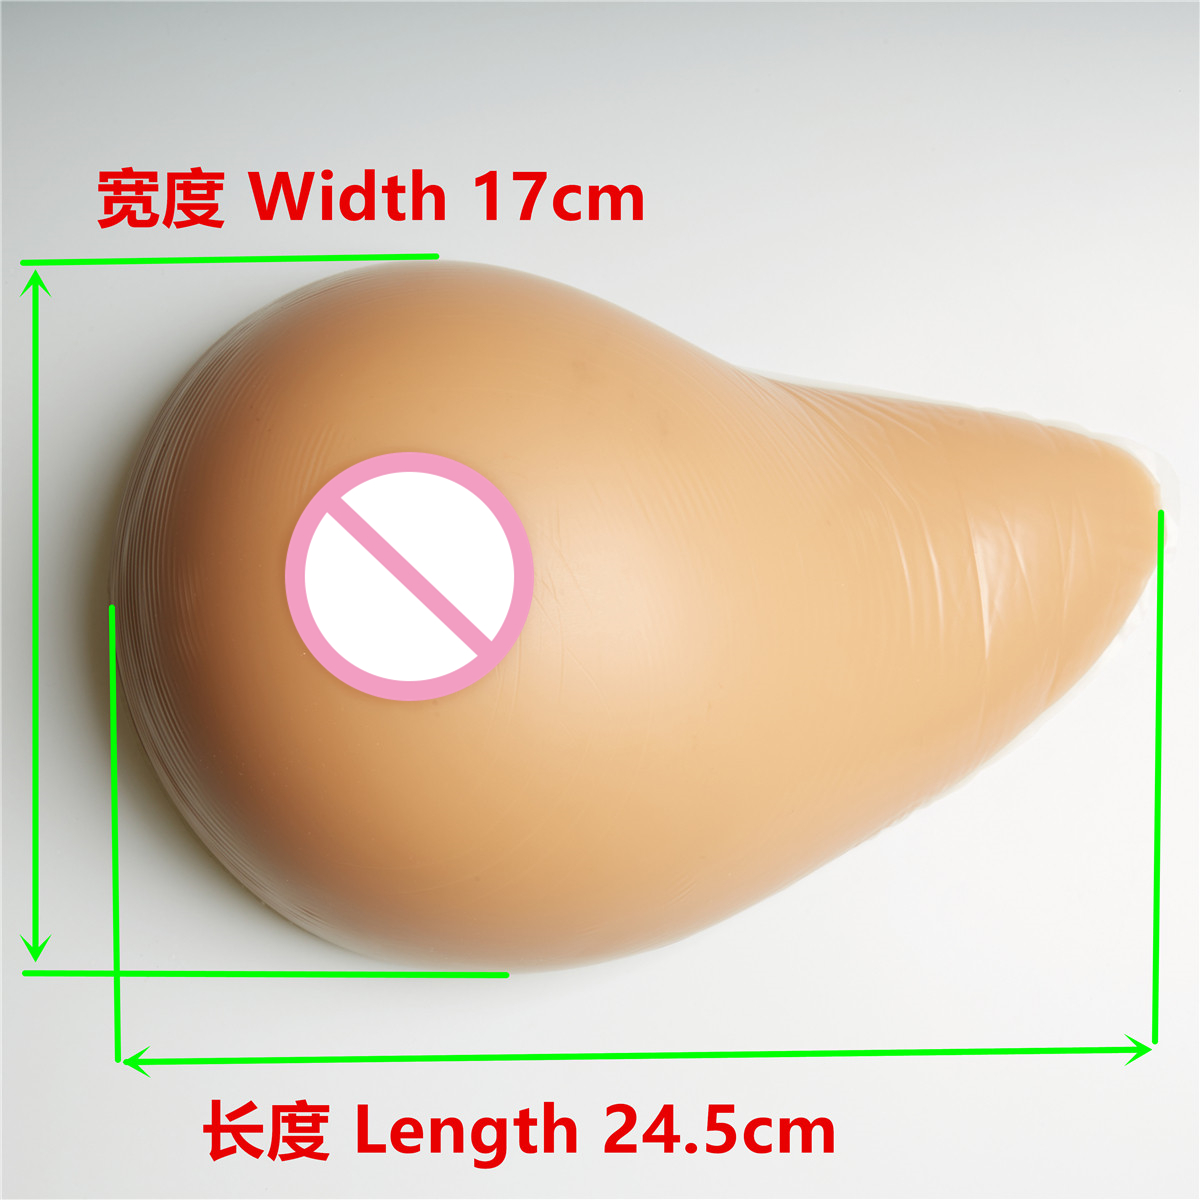 Silicone Boobs For Crossdressers 2400g/pair Brown Realistic Breast  Fake Breast Artificial Breast Adhesive Silicone BreastSilicone Boobs For Crossdressers 2400g/pair Brown Realistic Breast  Fake Breast Artificial Breast Adhesive Silicone Breast